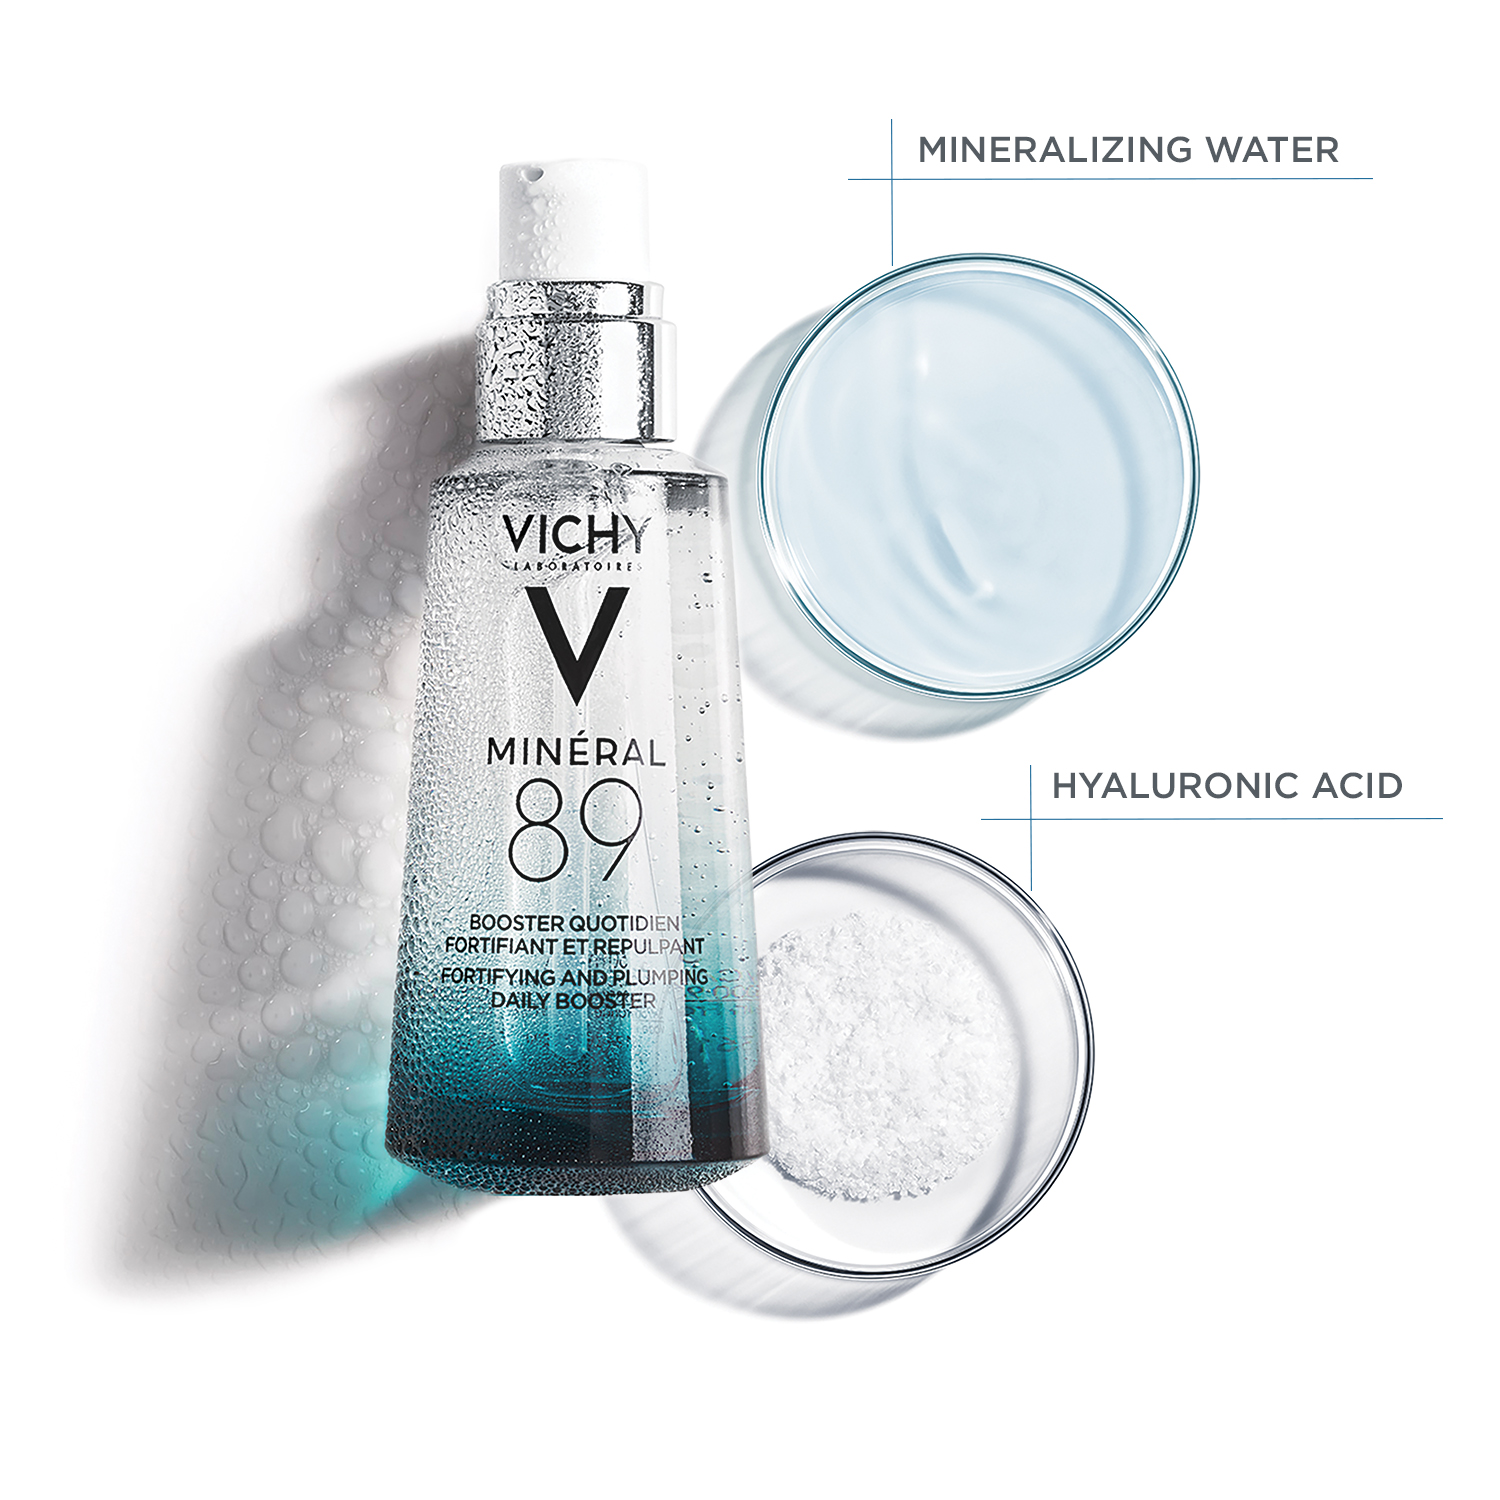 Mineral 89 75ml With Hyaluronic Acid By Vichy Laboratories